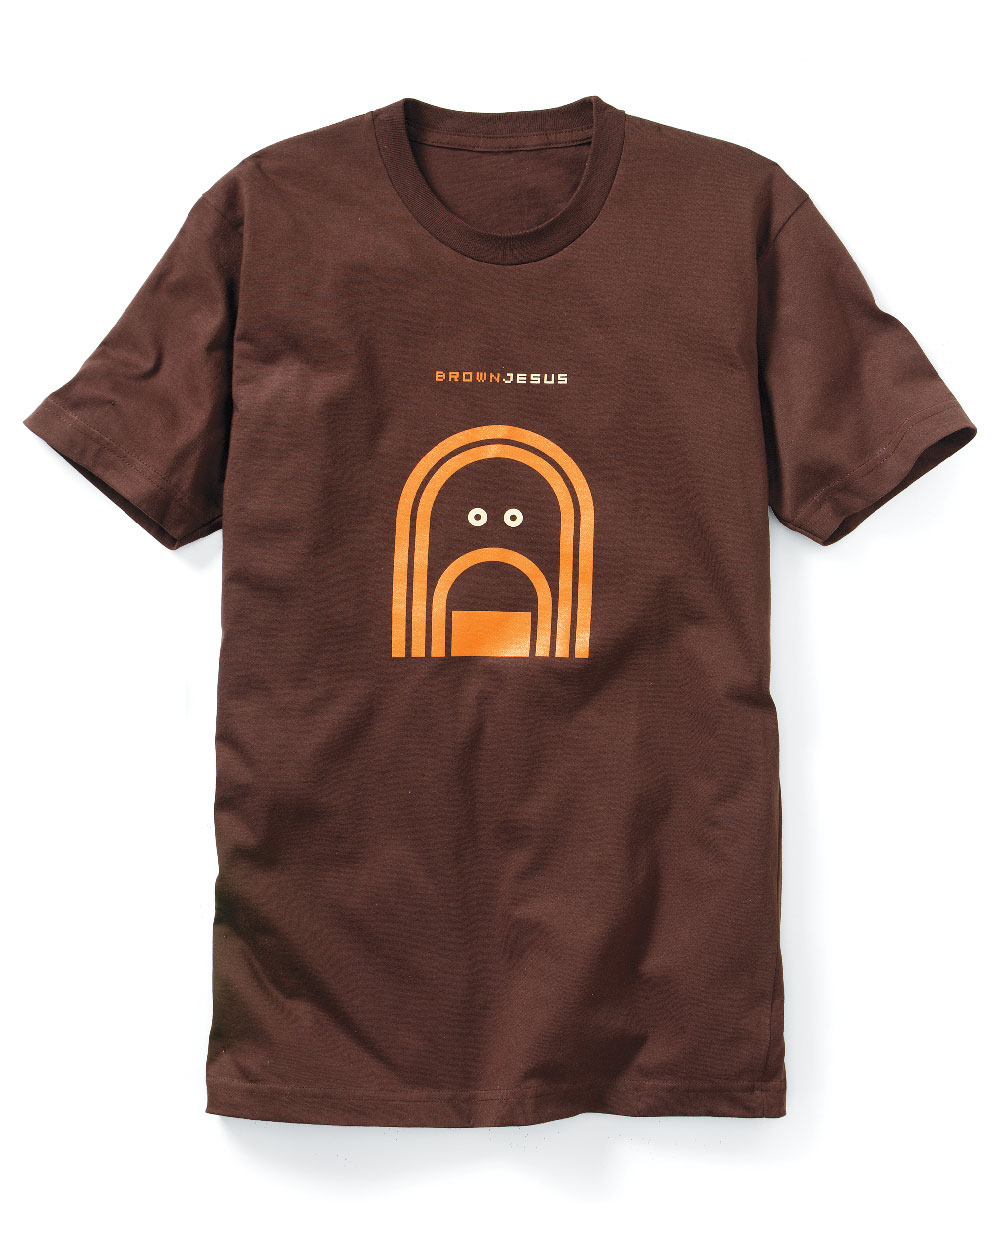 BrownJesus T-Shirt, (Men's XL ONLY CURRENTLY); American Apparel Fitted